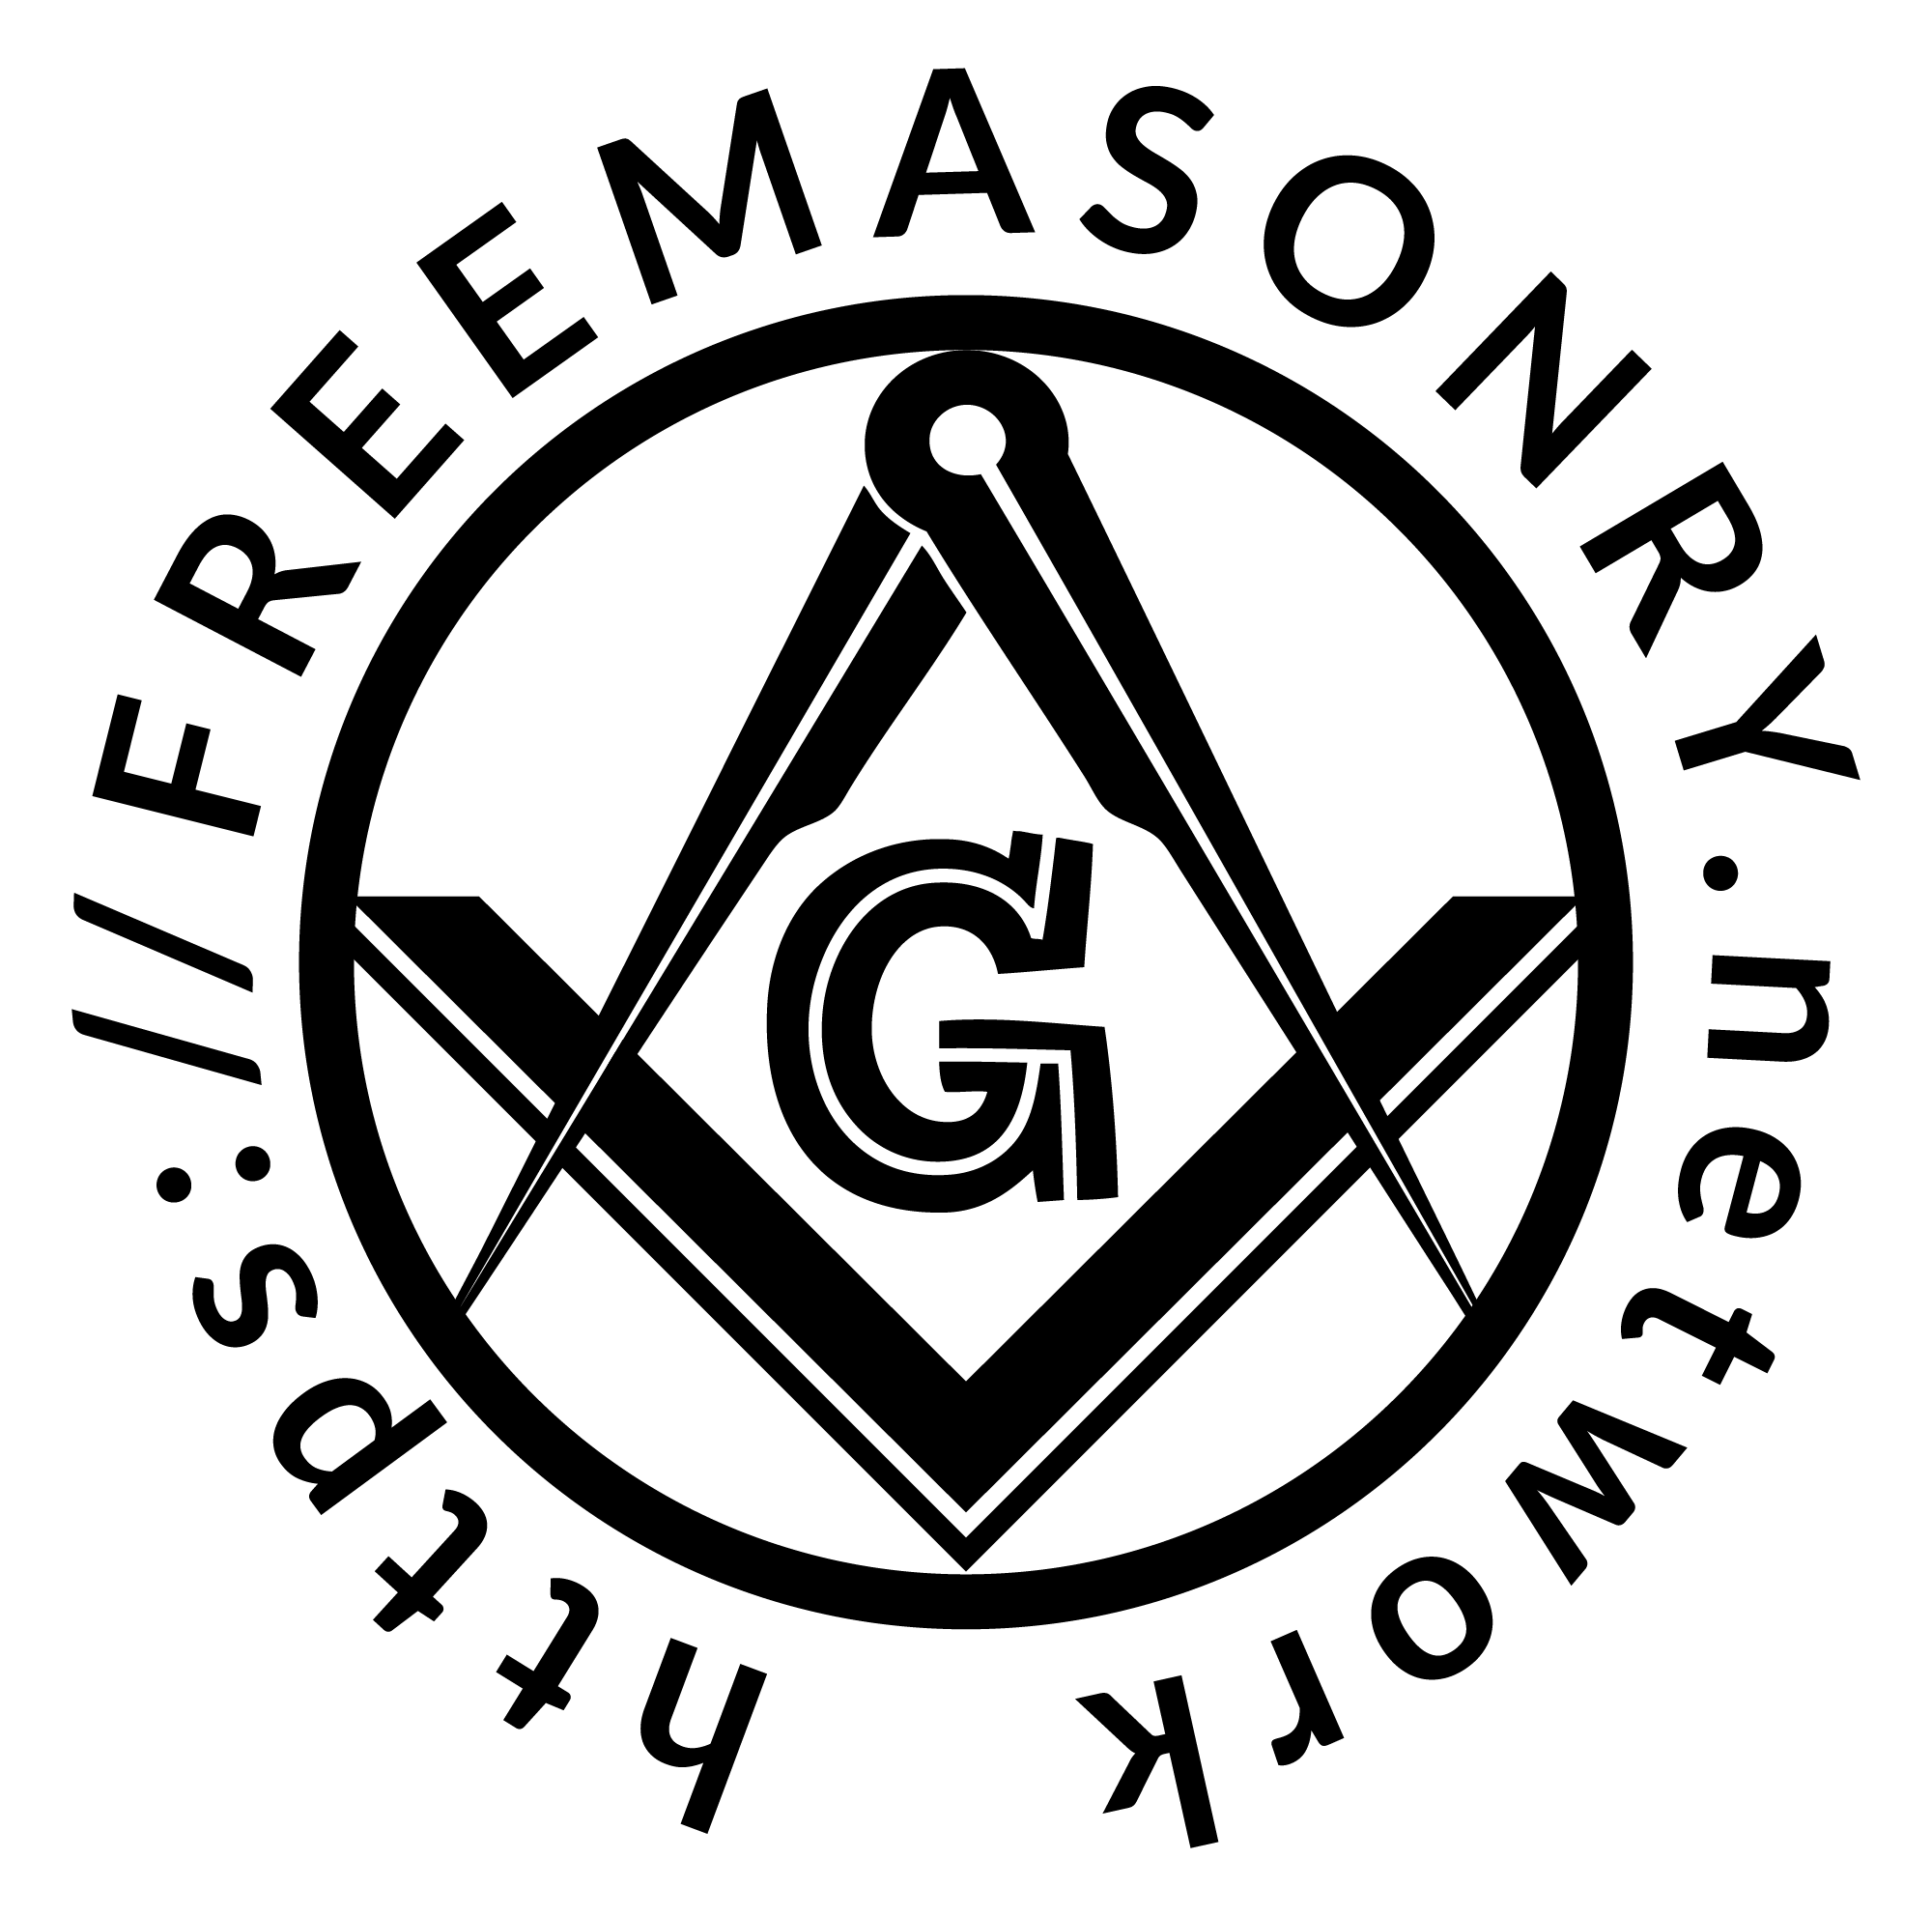 ANTI-MASONIC PARTY